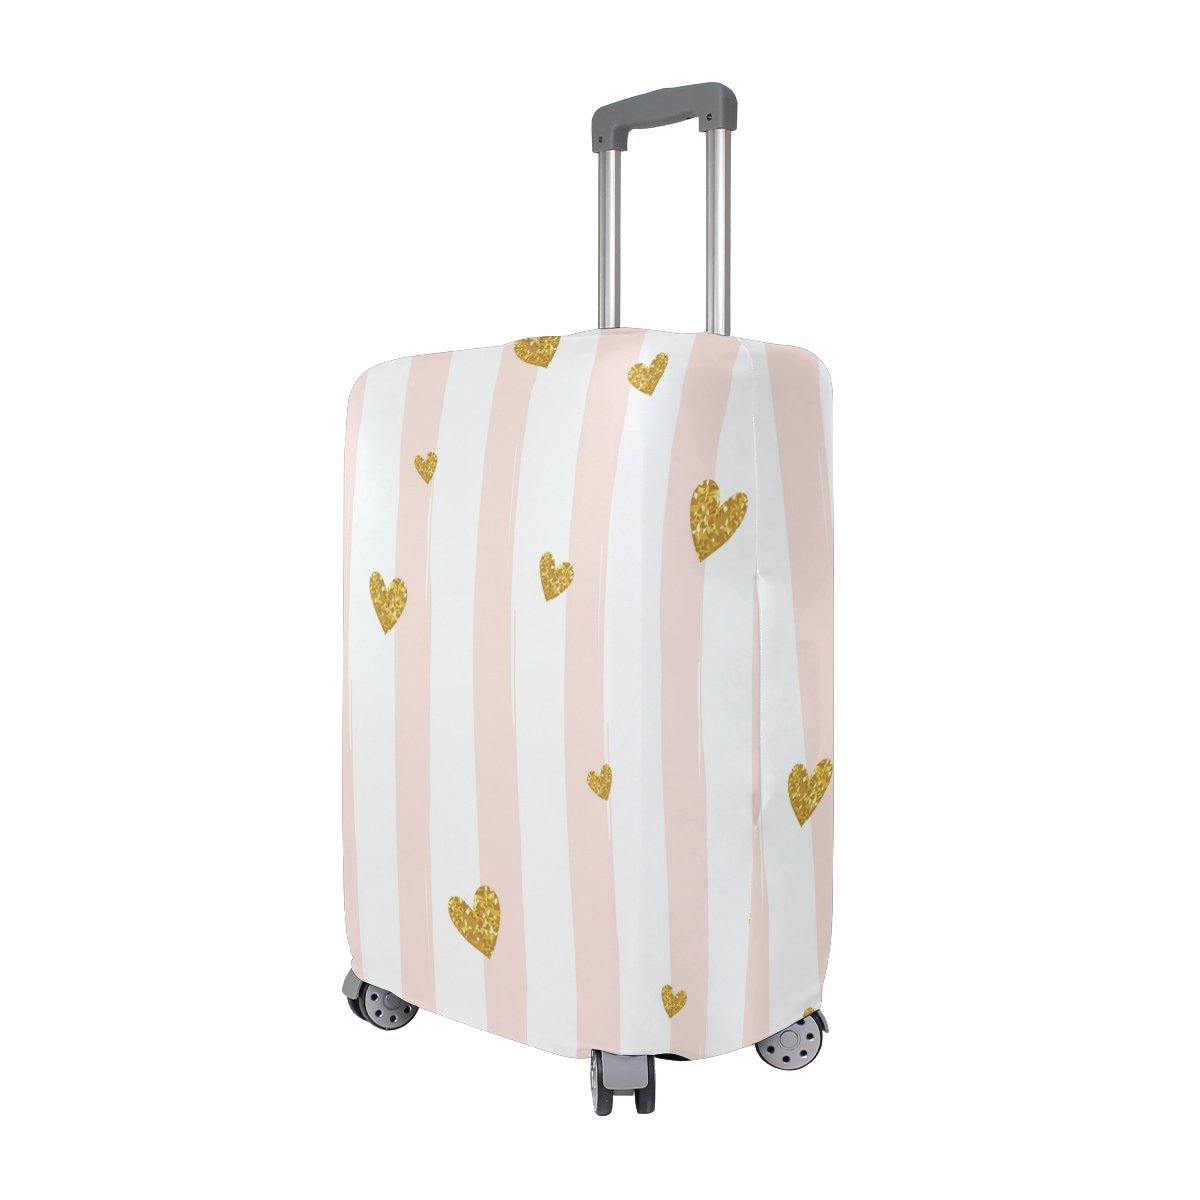 Stripe Love Luggage Cover Suitcase Protector Washable Spandex Baggage Cover with Zipper for Travel, Business and Outdoor by Yomole (Image #2)